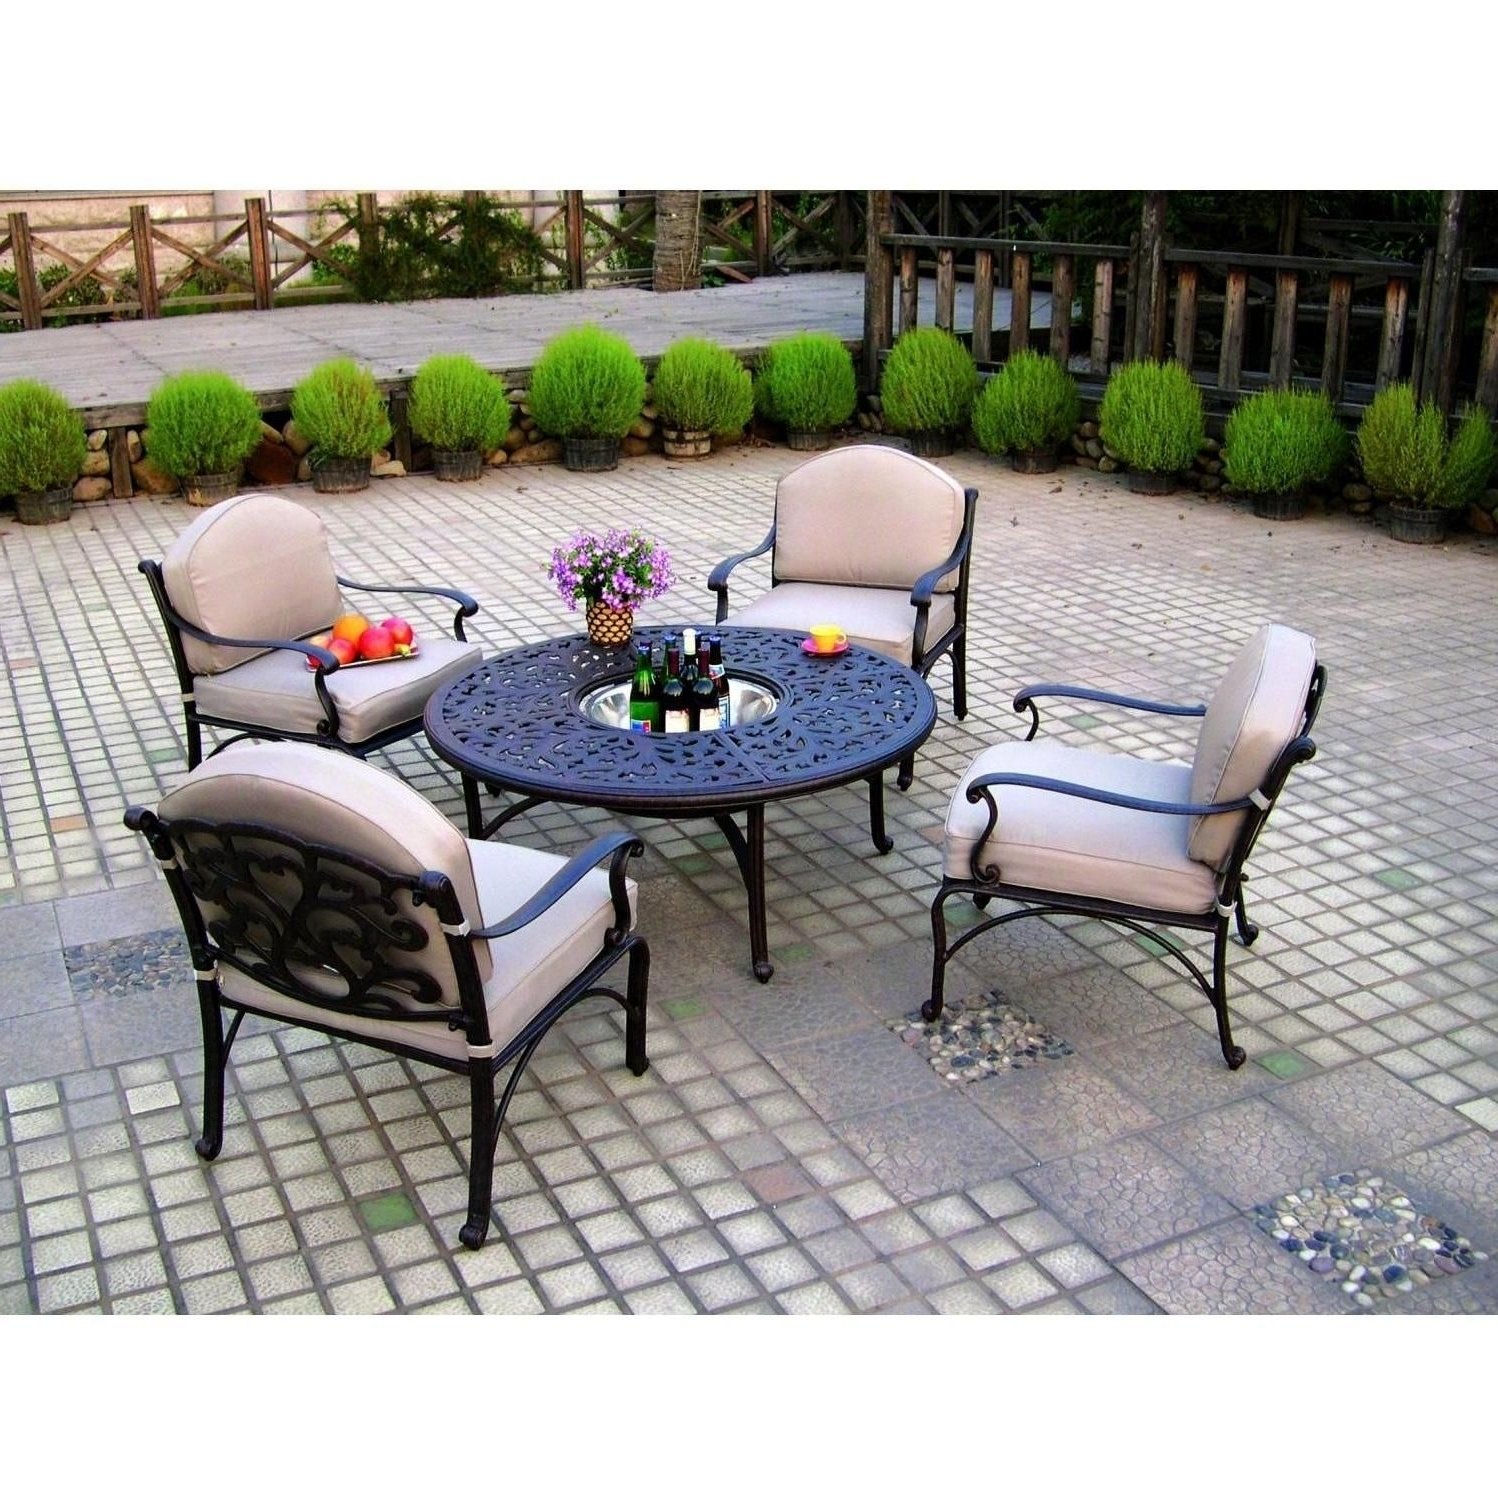 Metal Patio Conversation Sets With Well Known Darlee Catalina 5 Piece Cast Aluminum Patio Conversation Seating Set (View 19 of 20)